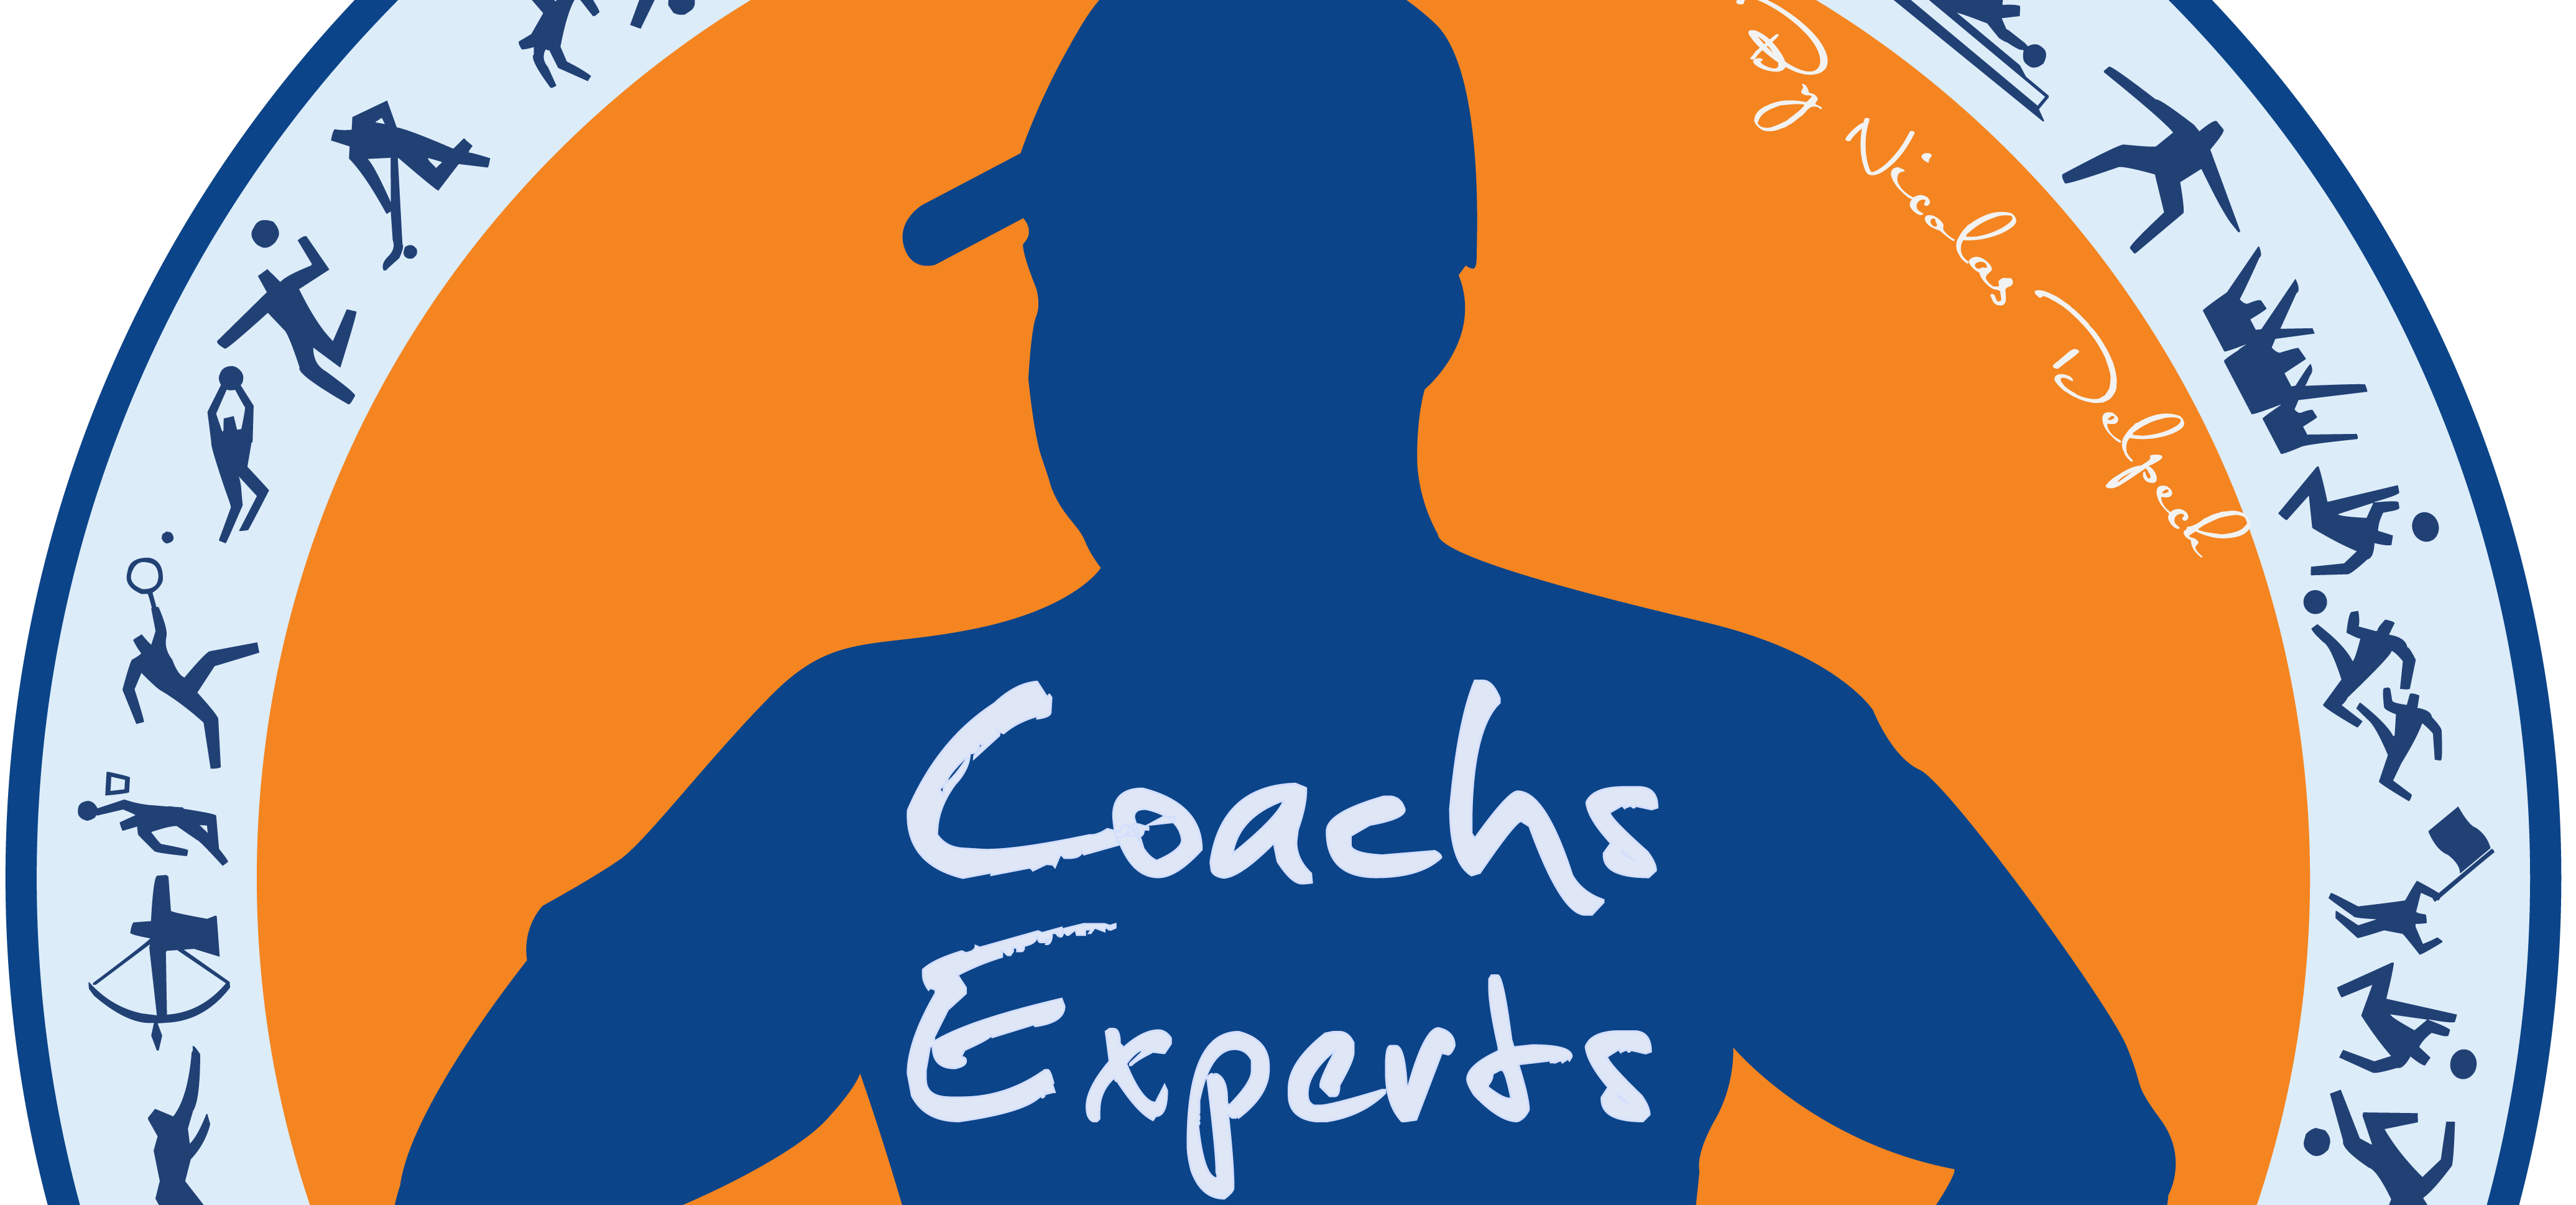 Coachs experts